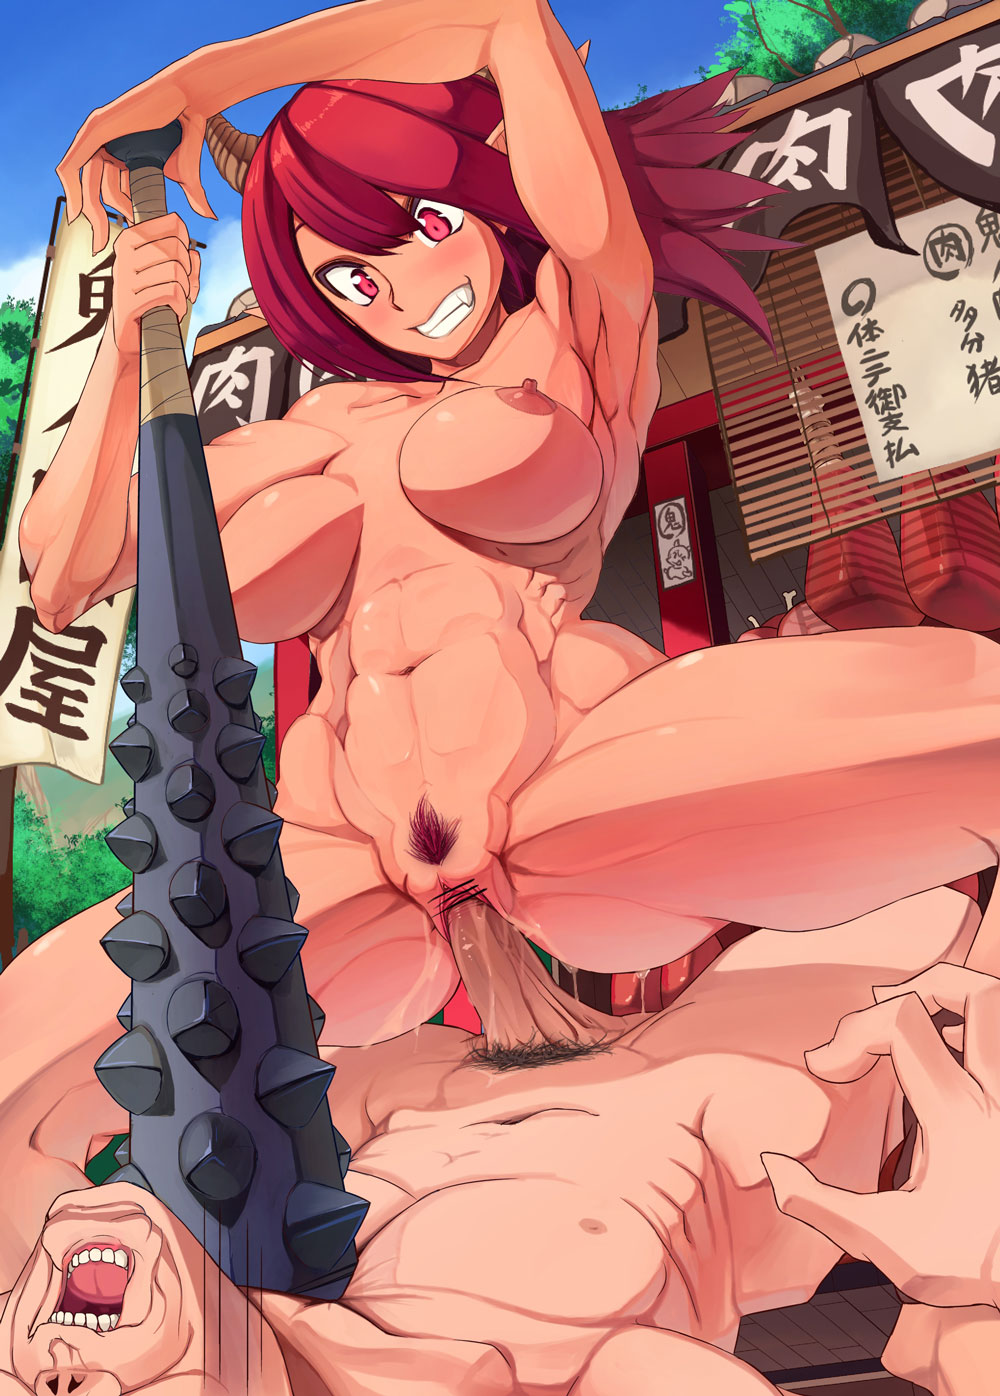 Hentai female demon blowjob images pornos pictures